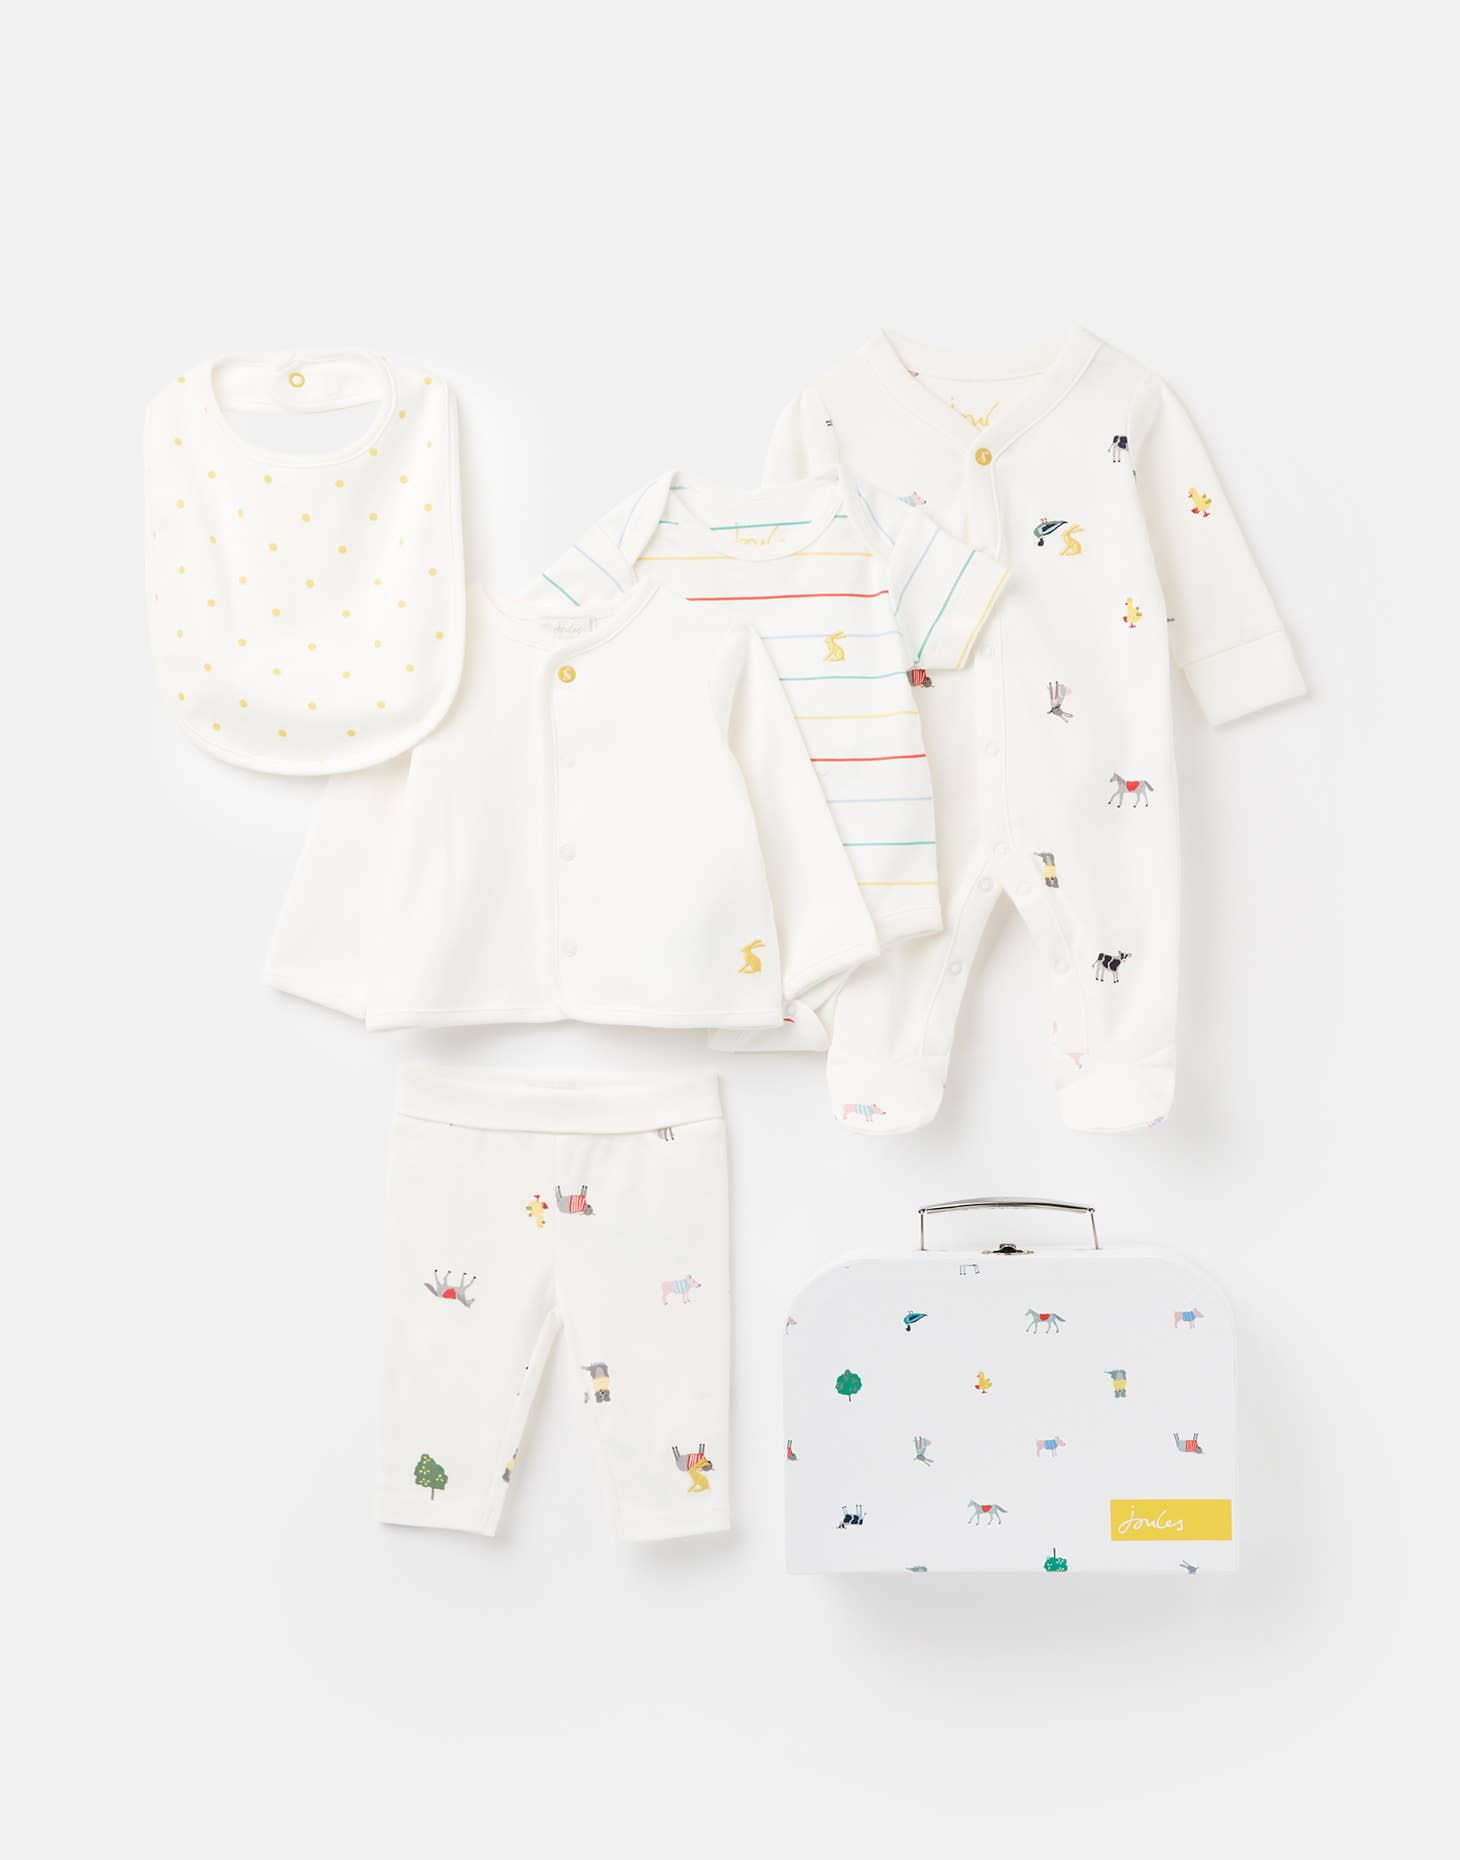 Joules - 207566 The Starter Set 5 Piece - Le Bébé Chic Boutique